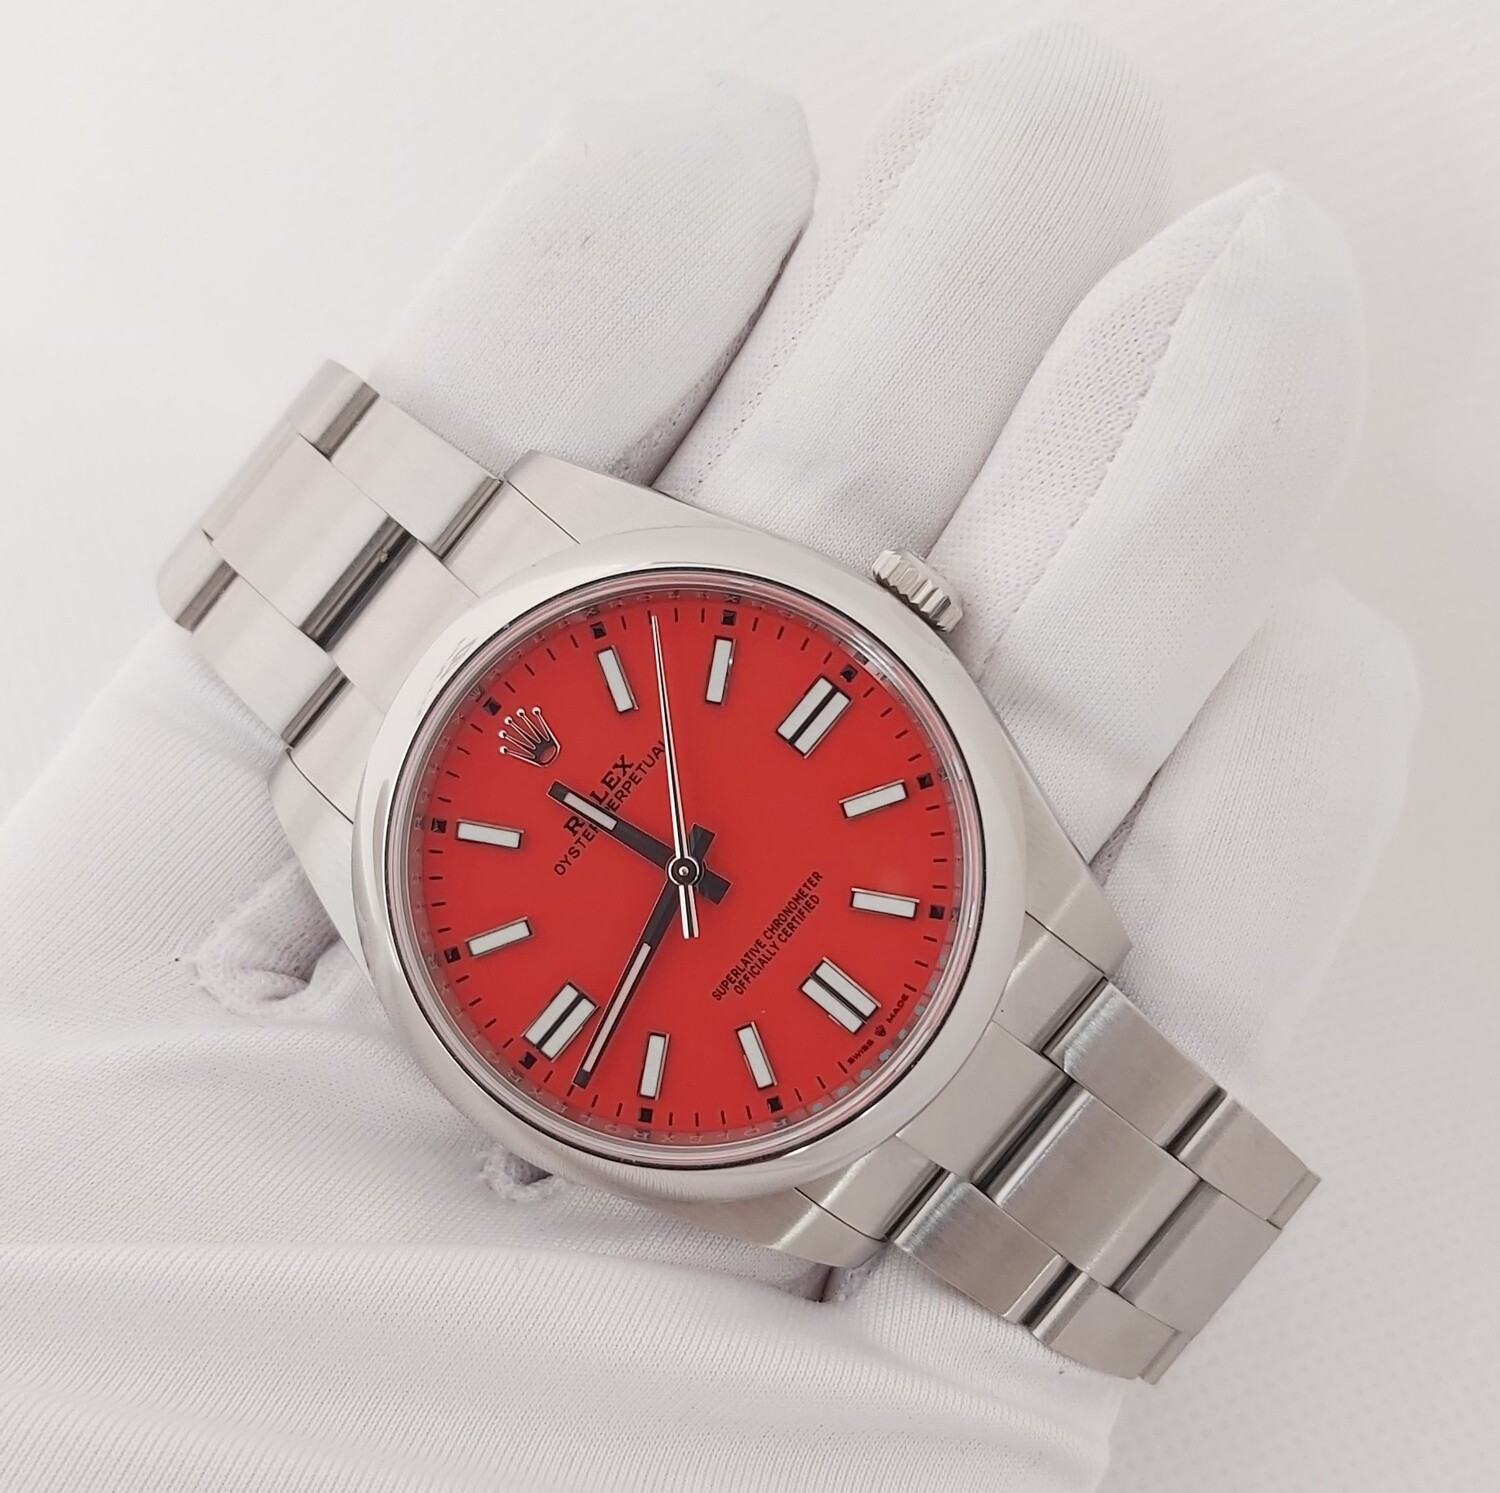 Rolex Oyster Perpetual 41 - 124300 - Coral Red - Full Set